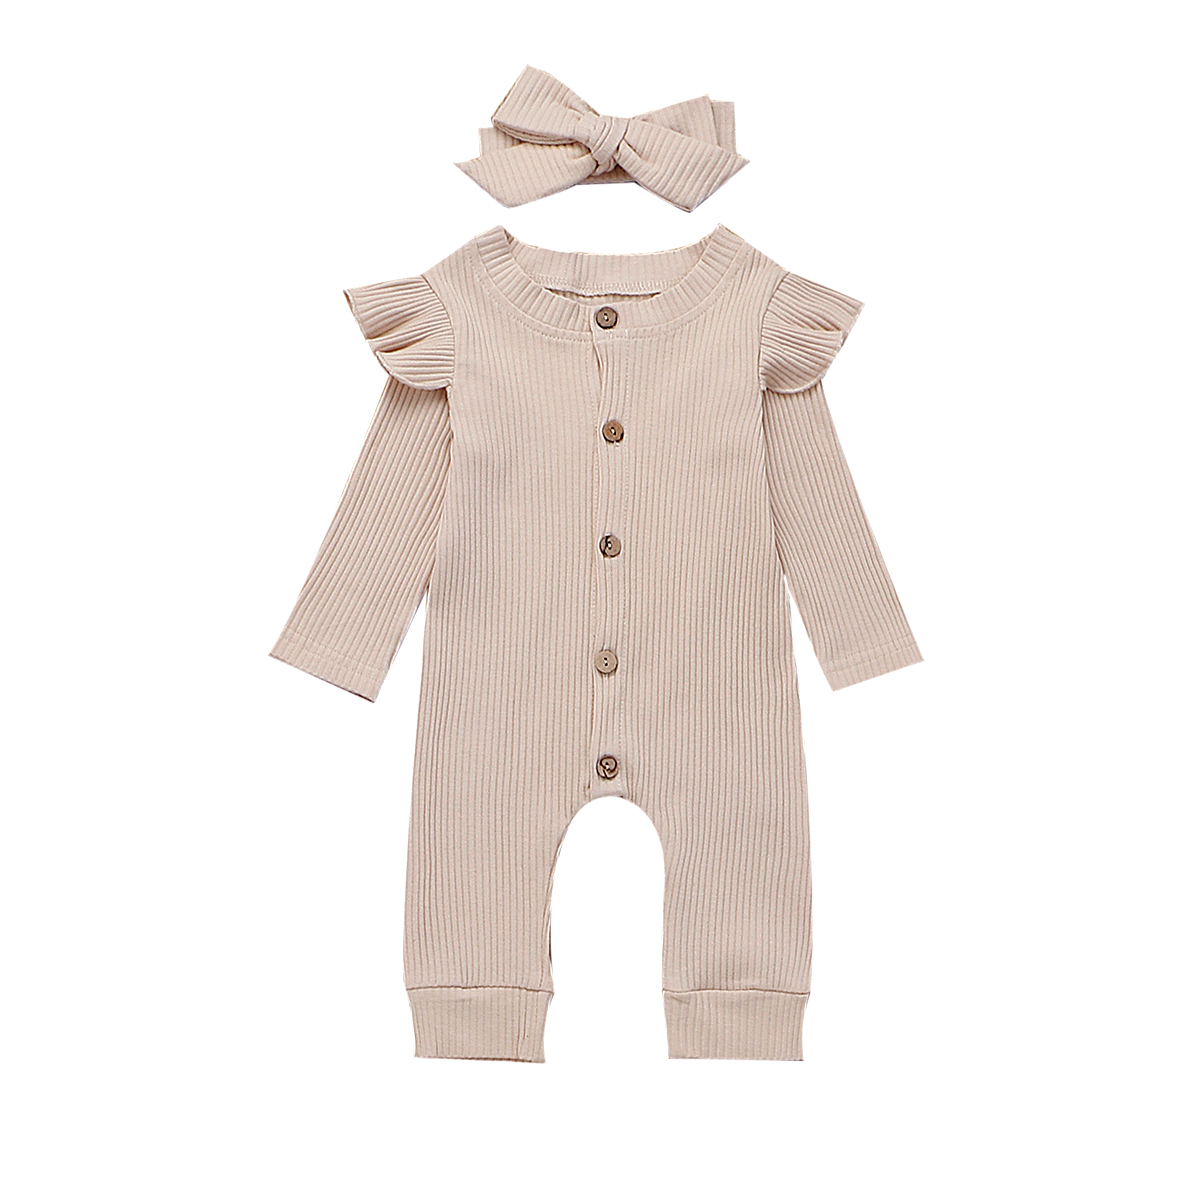 Newborn Infant Baby Girl Boy 2Pcs Autumn Clothes Set Knitted   Romper   Jumpsuit Outfits Ruffles Long Sleeve Autumn 4 Color 0-24M